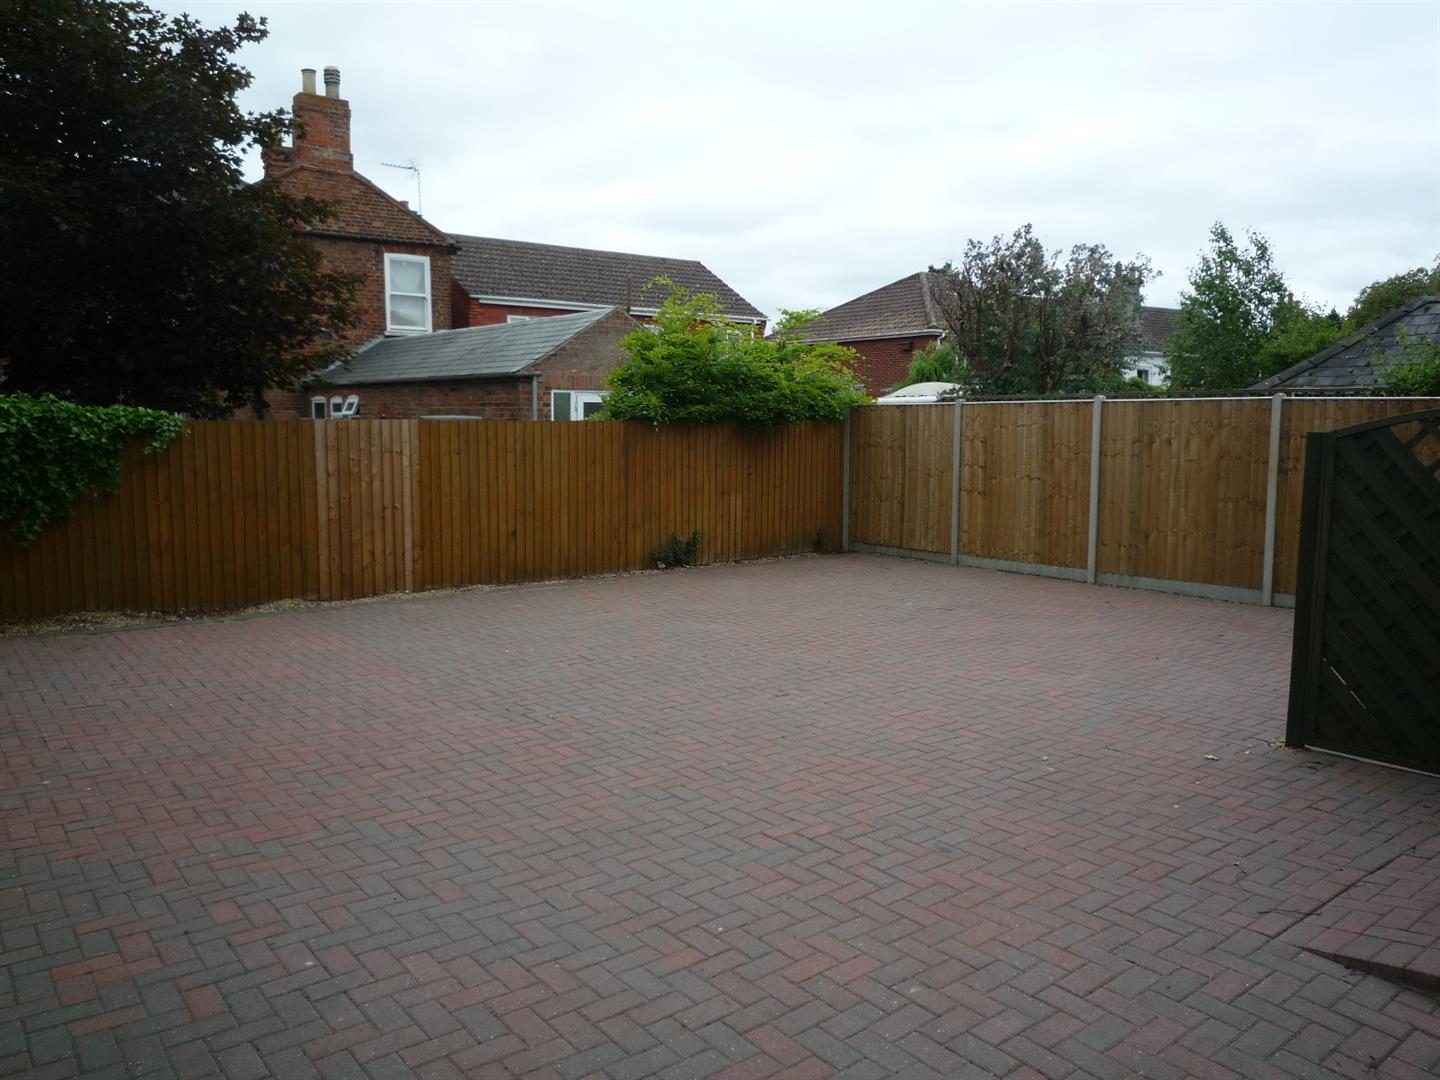 3 bed house to rent in Holbeach Spalding, PE12 7DR  - Property Image 7